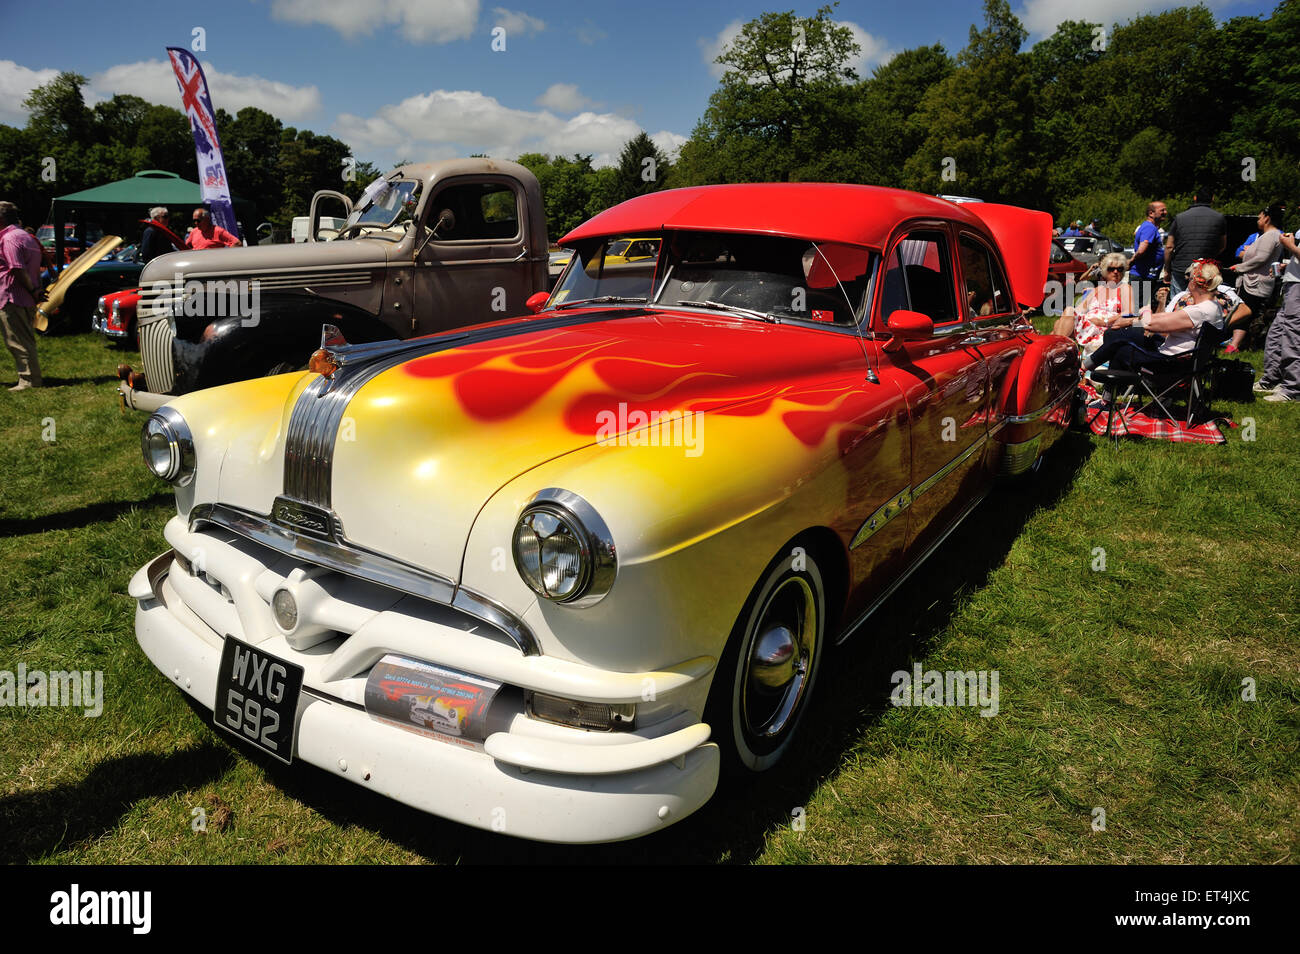 Vintage Rally Stock Photos & Vintage Rally Stock Images - Alamy